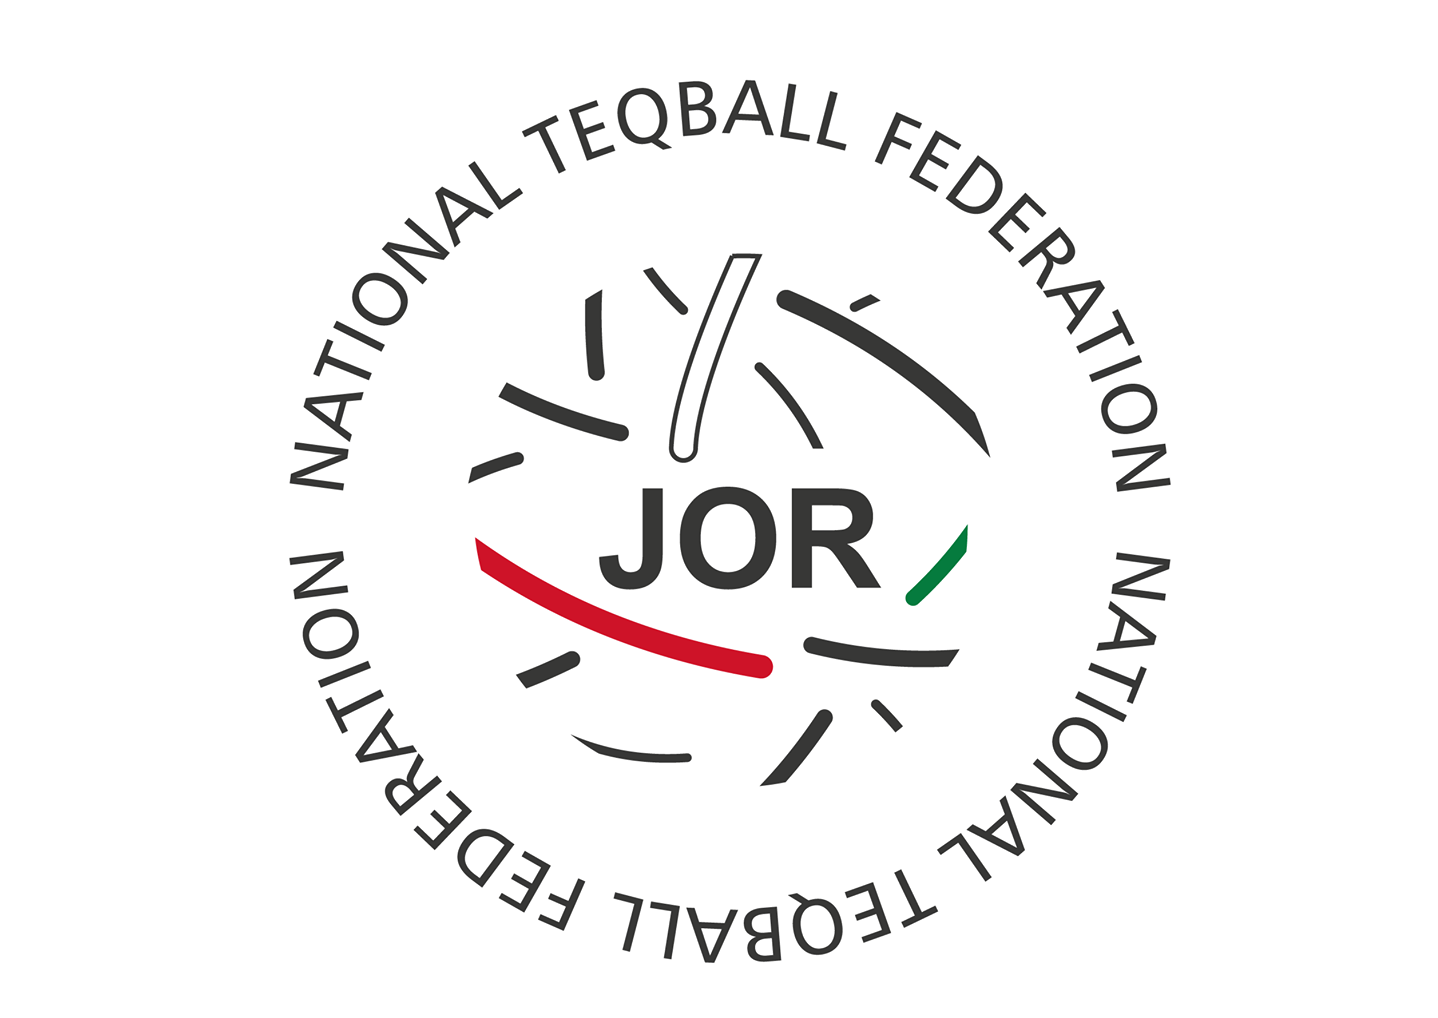 Sports Federation of Jordanian Universities and NOC commit to growing teqball in Jordan